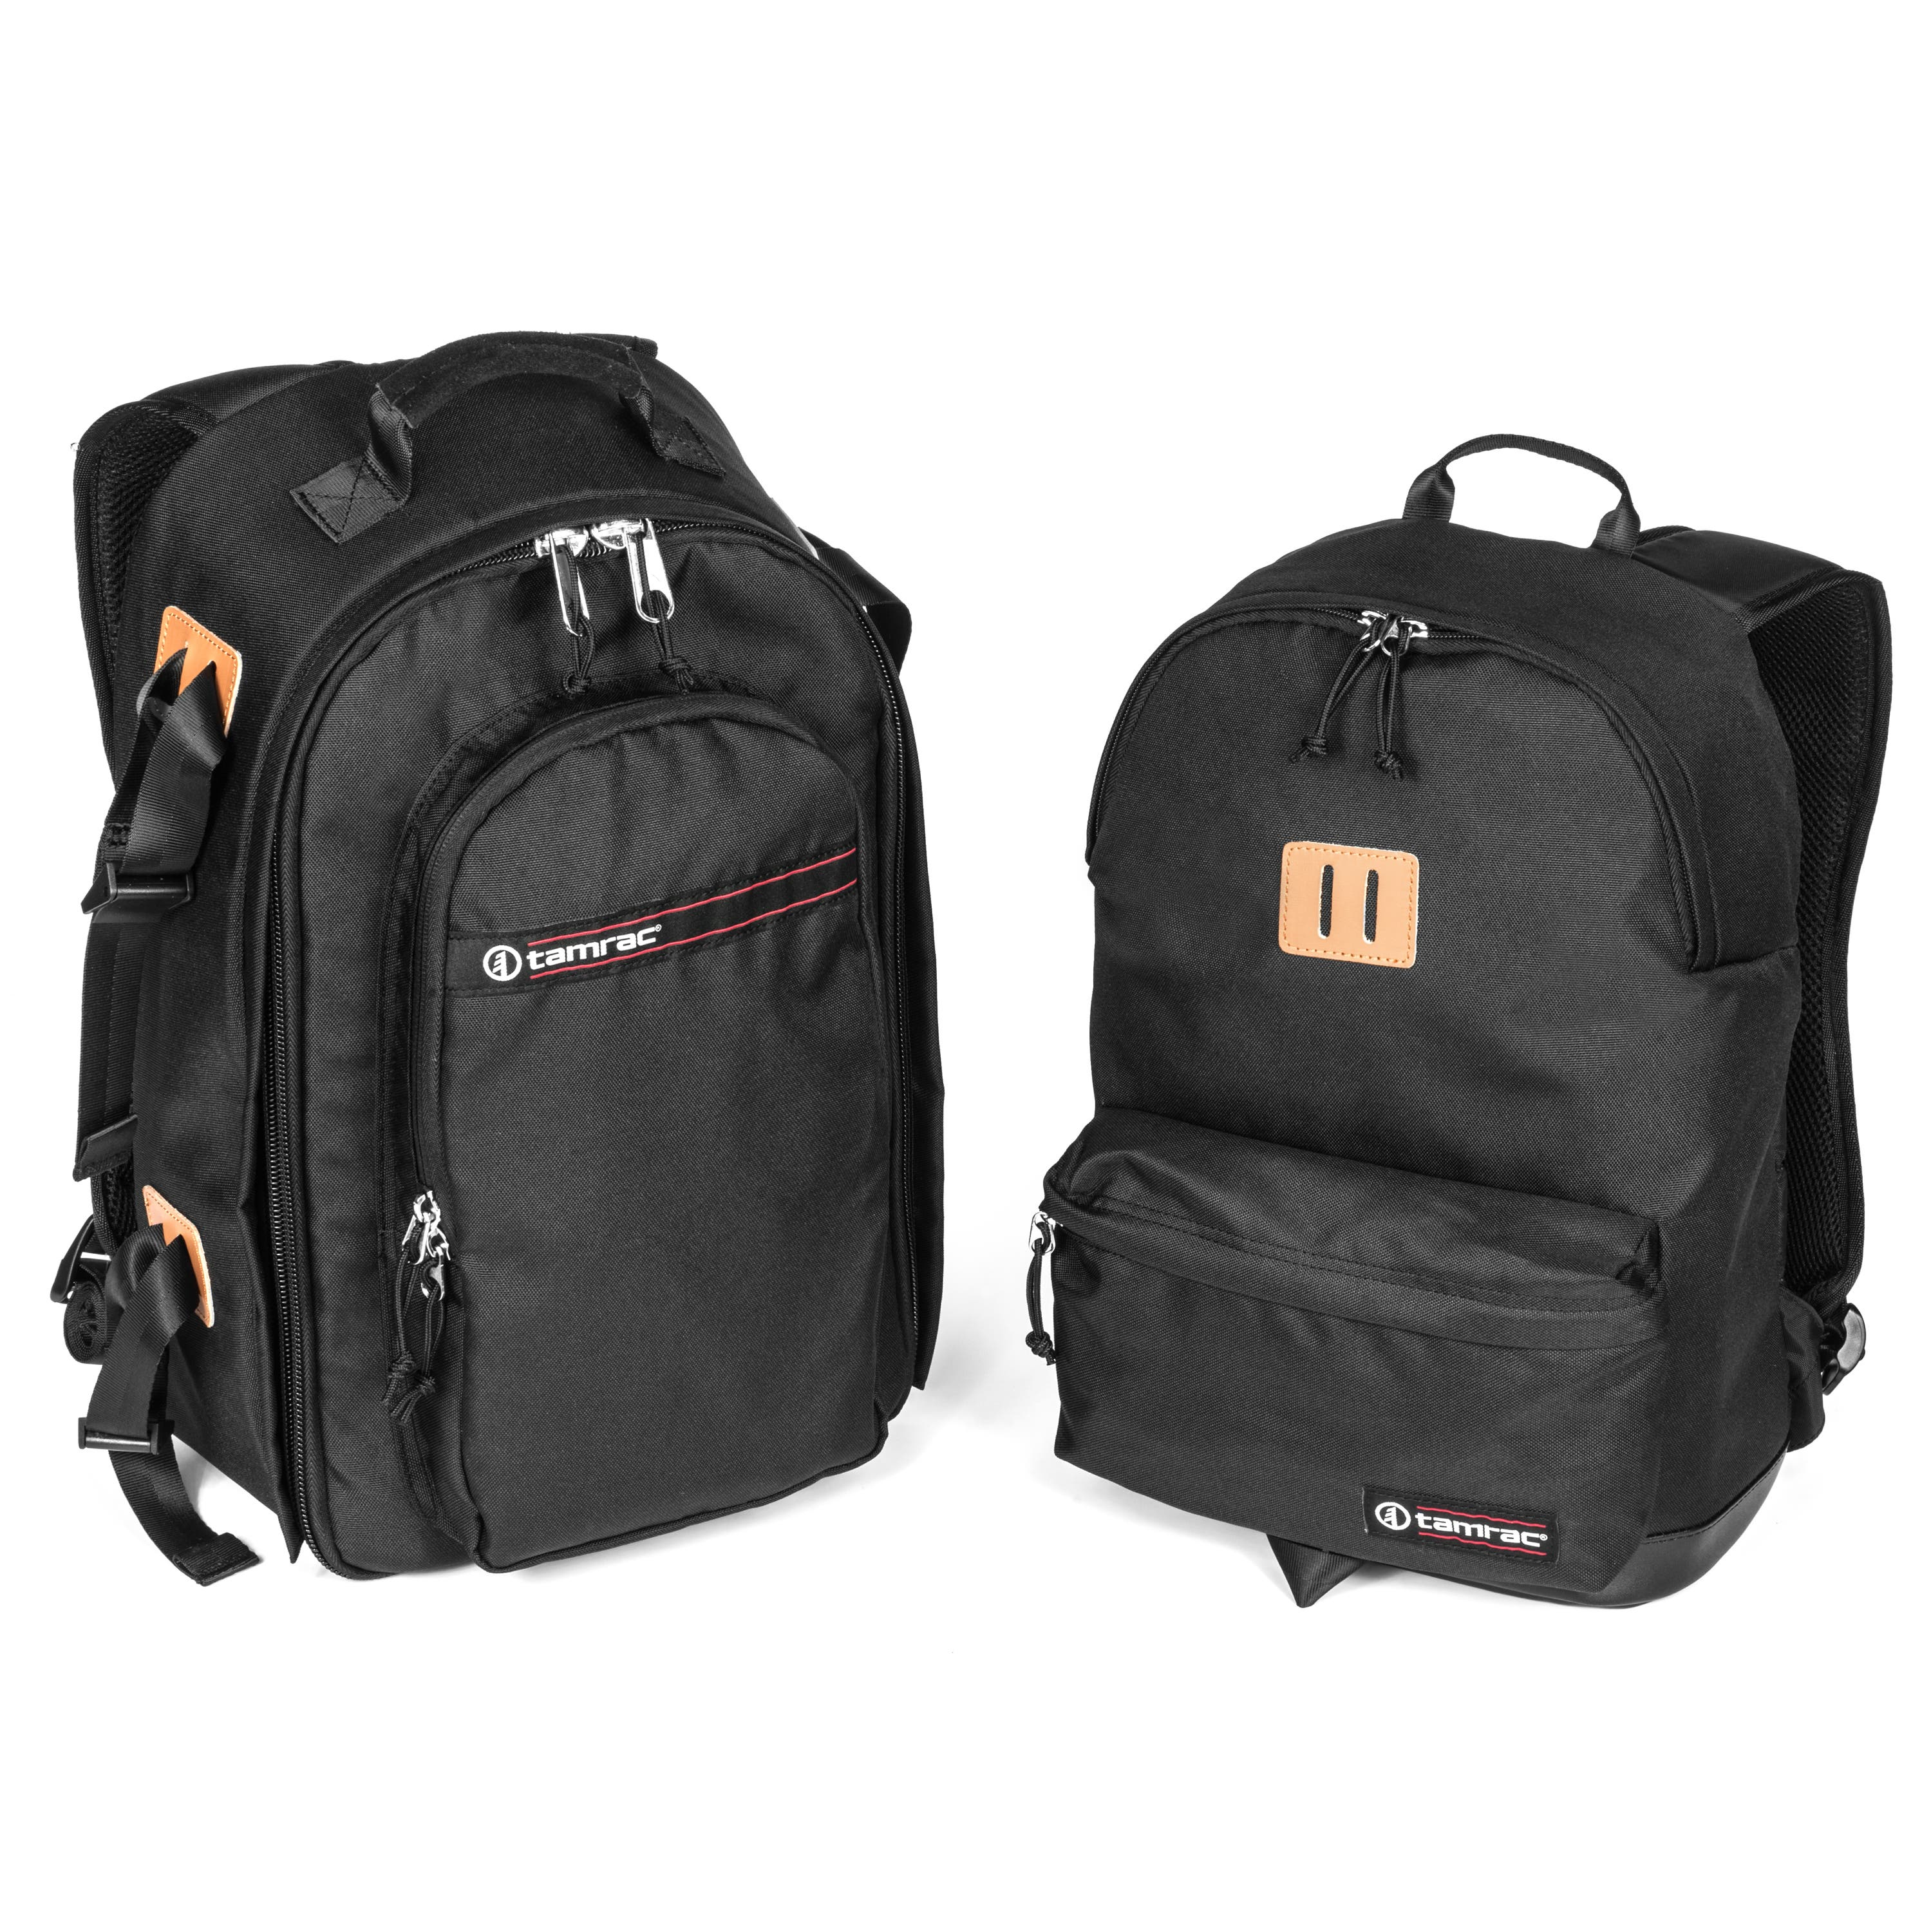 The New Tamrac Traditions Camera Bags Are a Throwback to Yesteryear